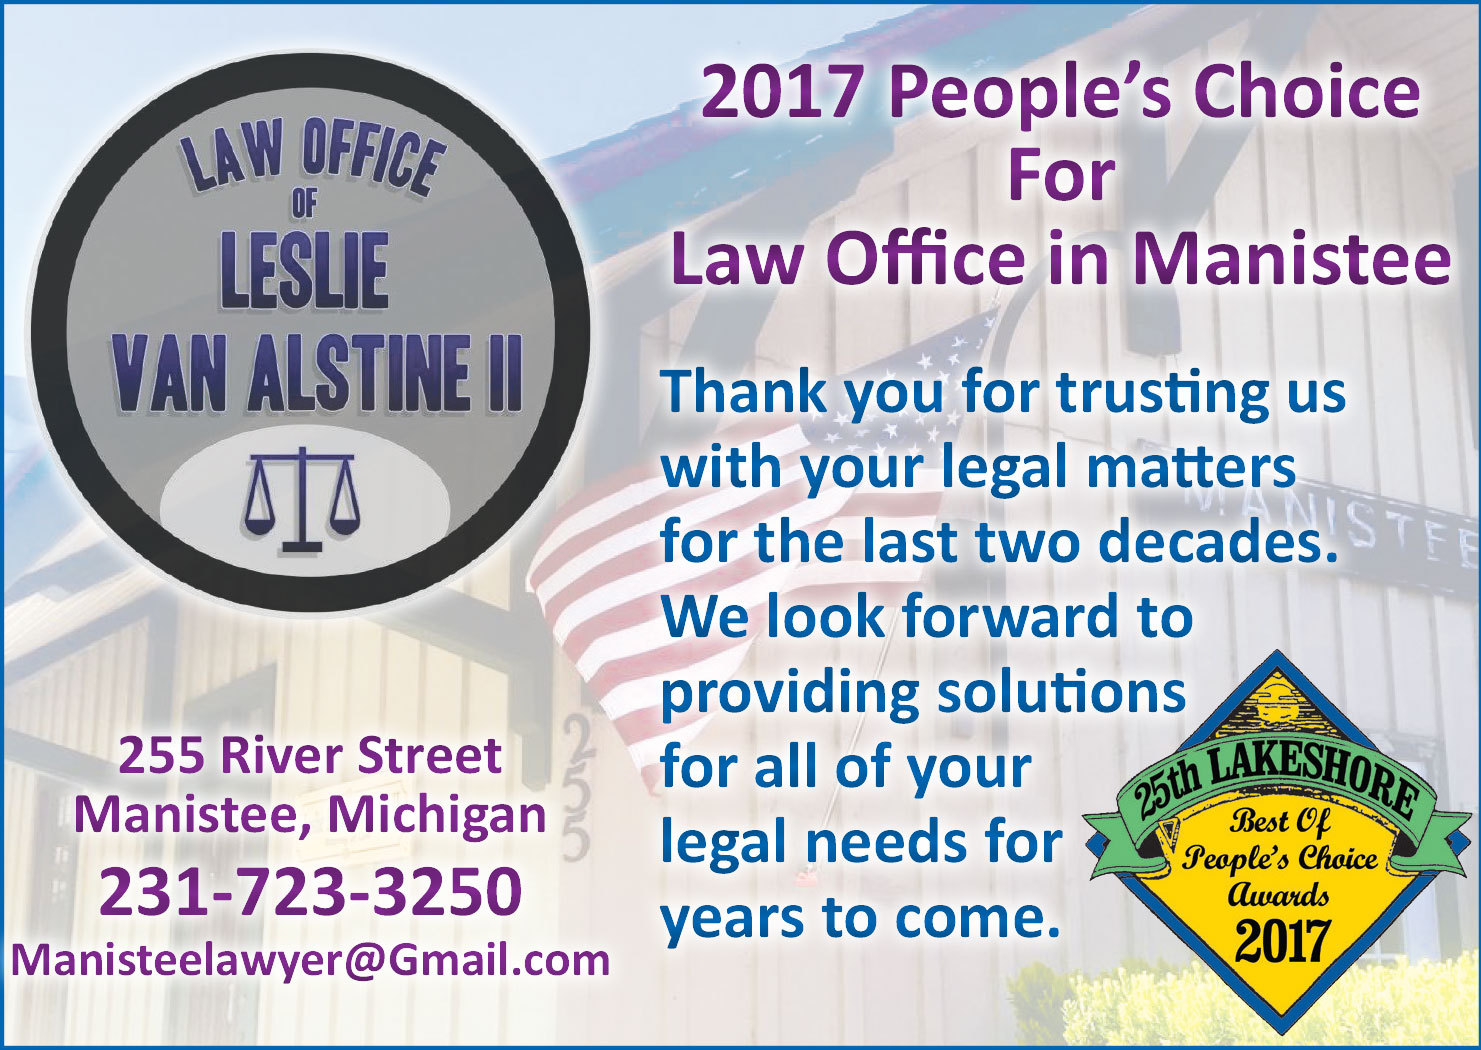 Voted People's choice for Law Office in 2017